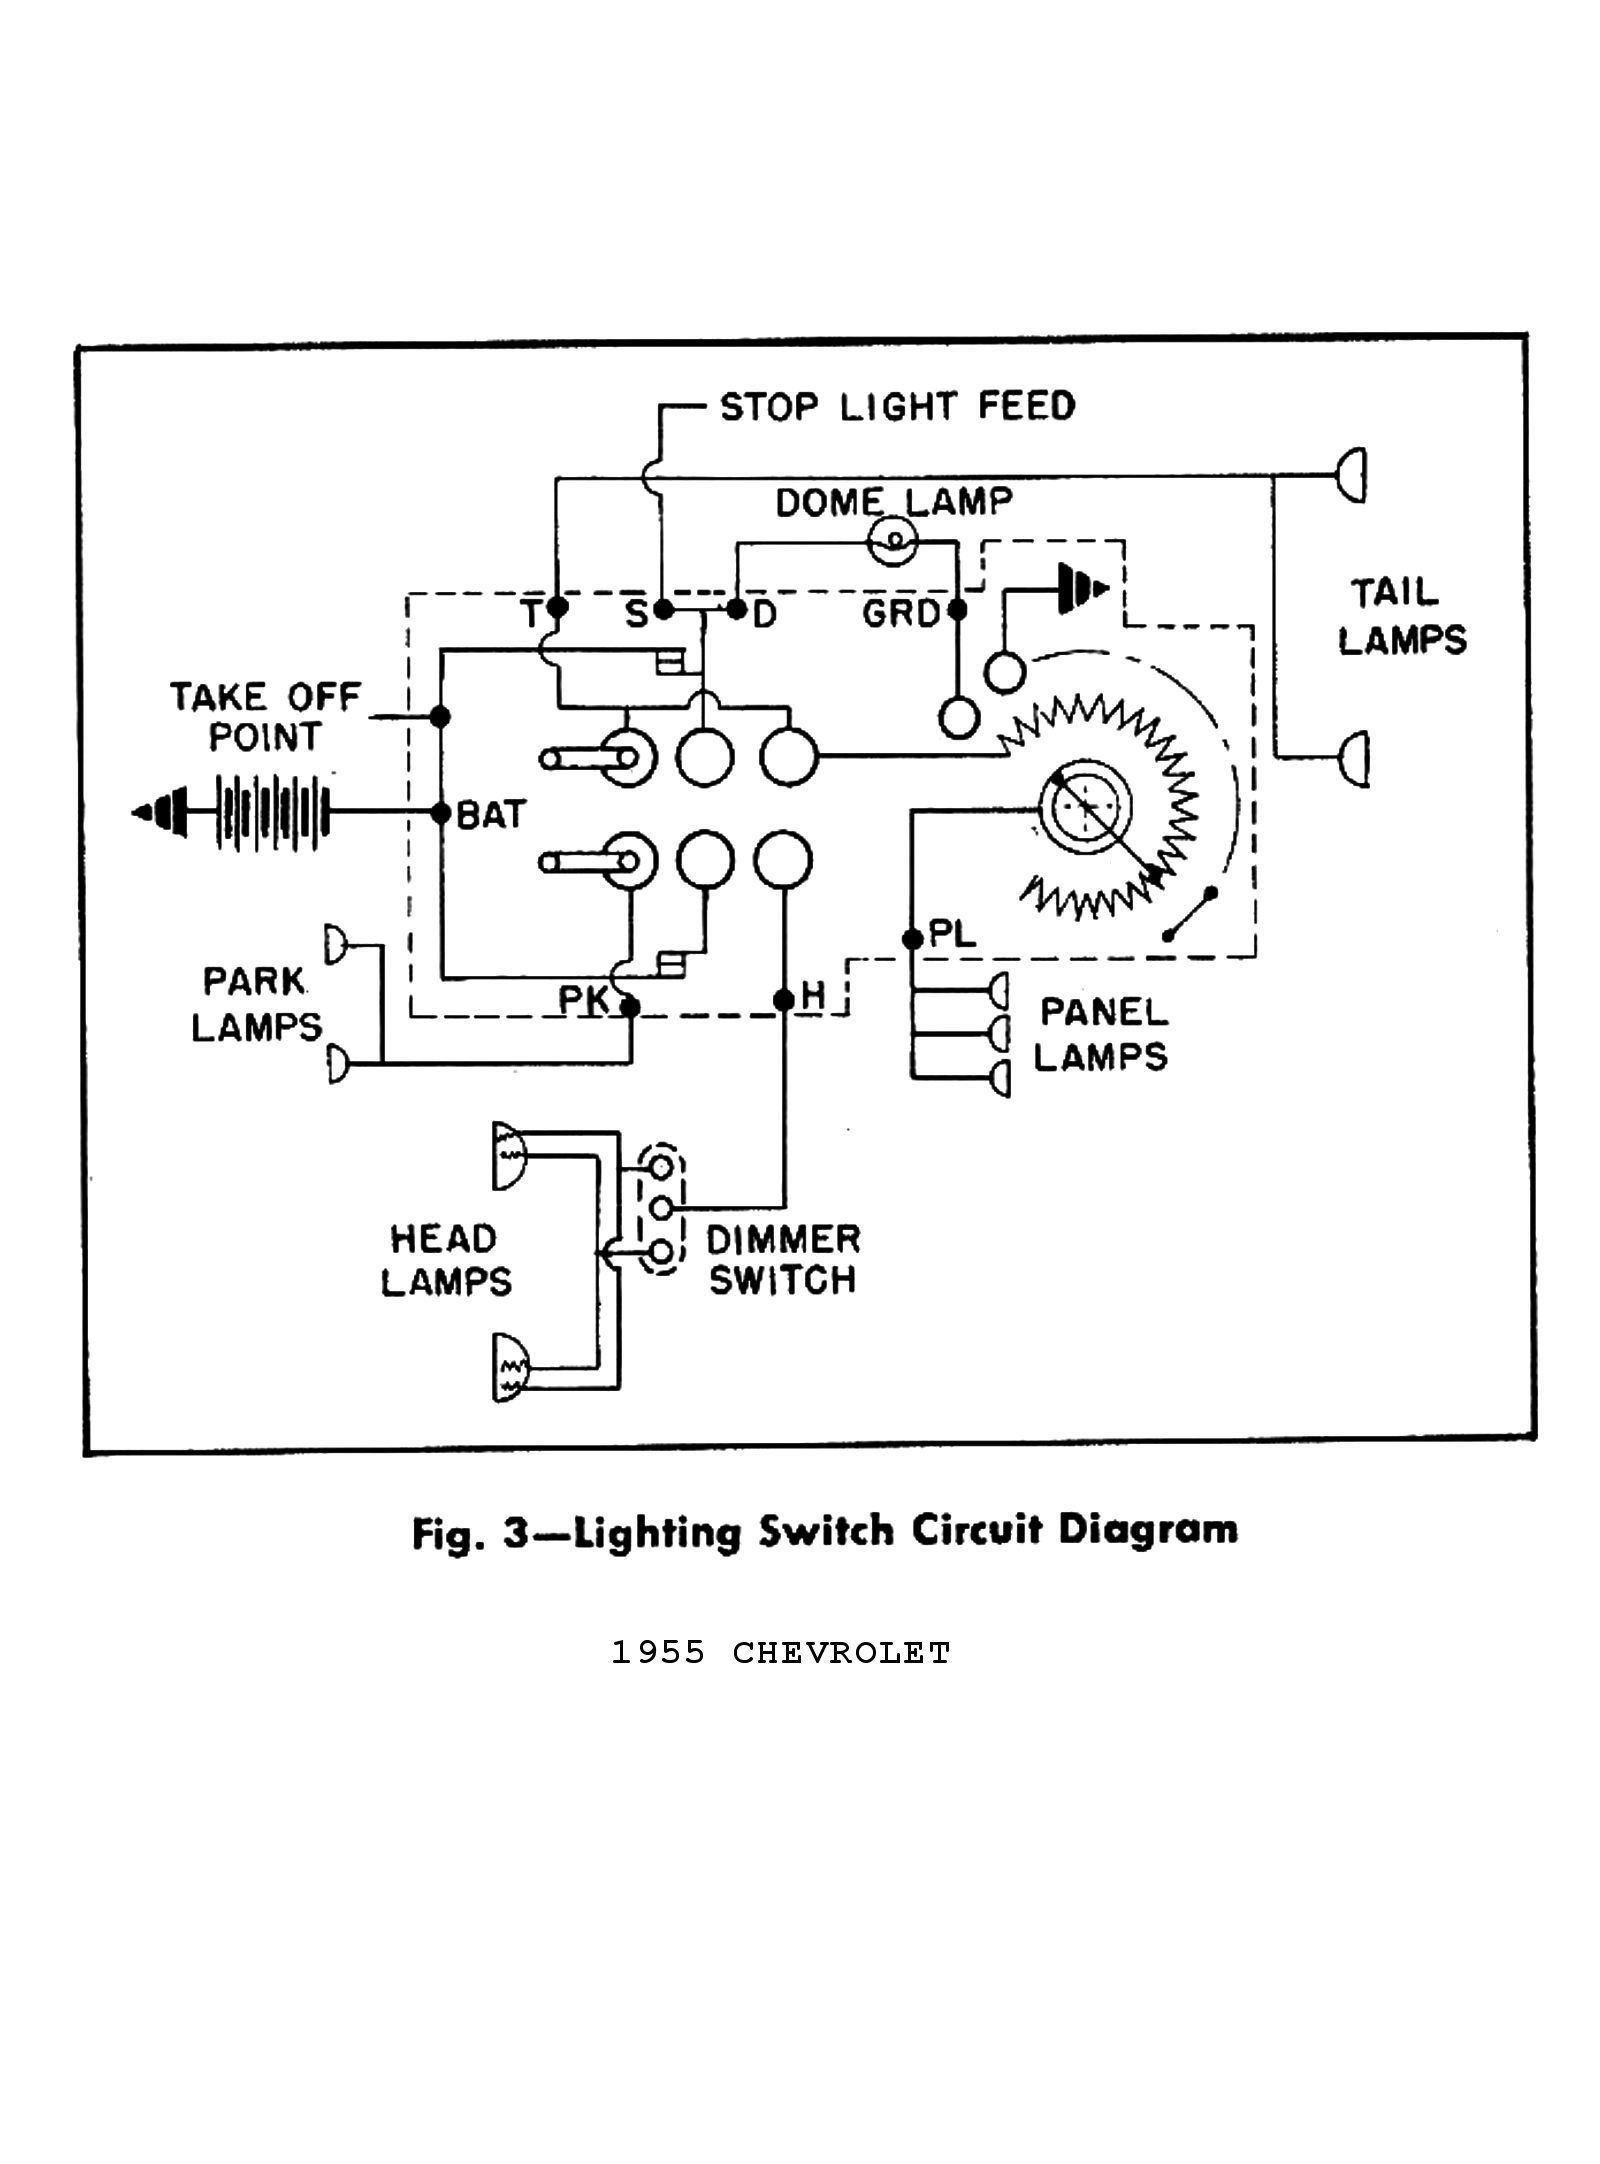 55 chevy ignition switch wiring diagram wiring diagram yer 1980 chevy truck ignition wiring diagram truck ignition wiring diagram [ 1600 x 2164 Pixel ]